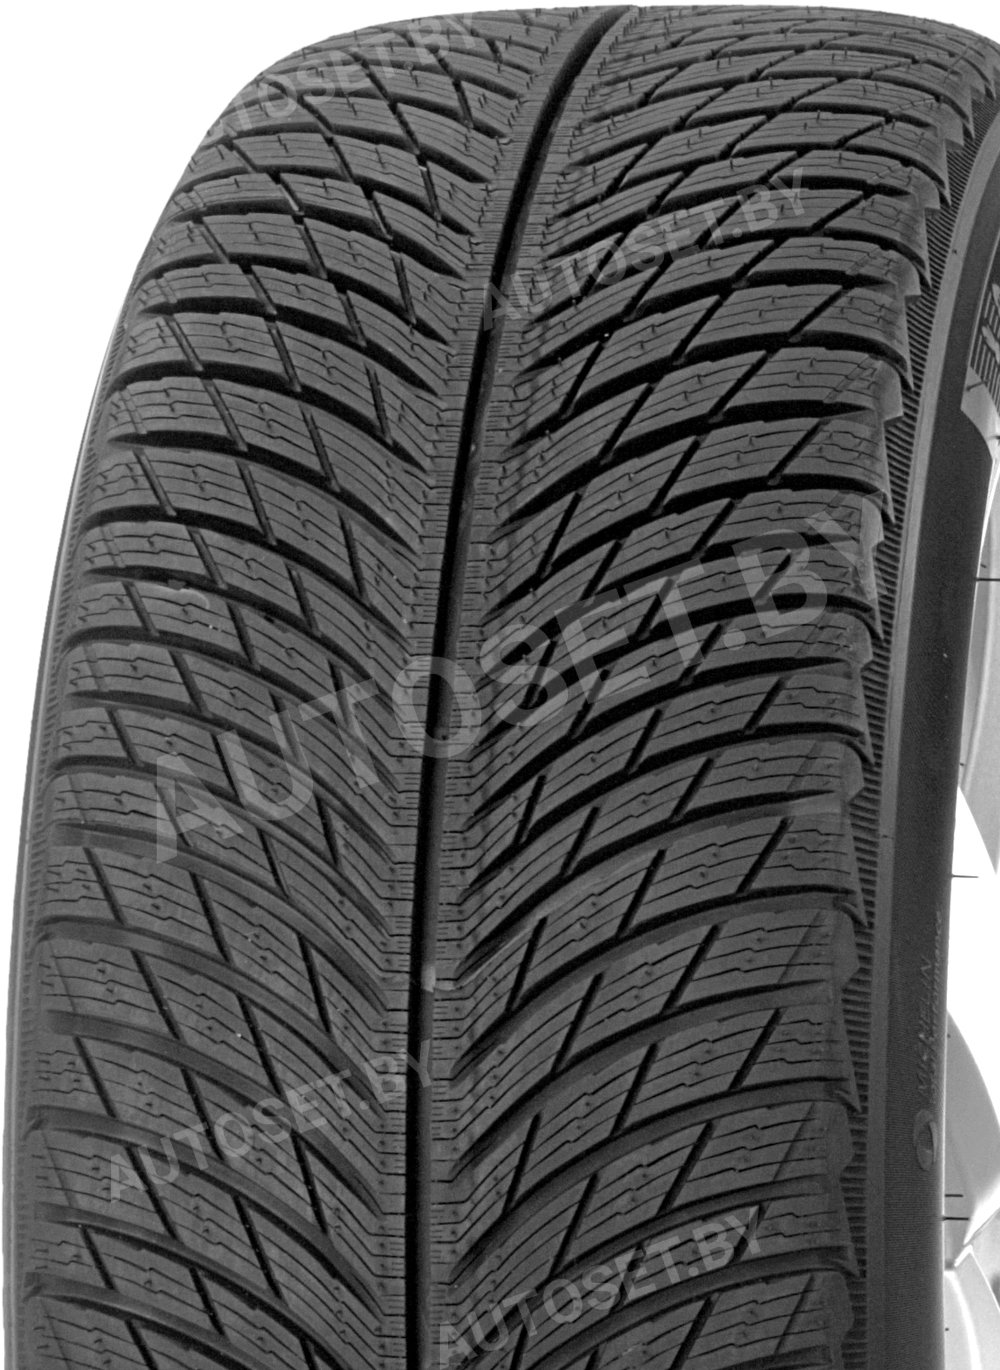 Зимняя шина MICHELIN Pilot Alpin 5 SUV – вид 1